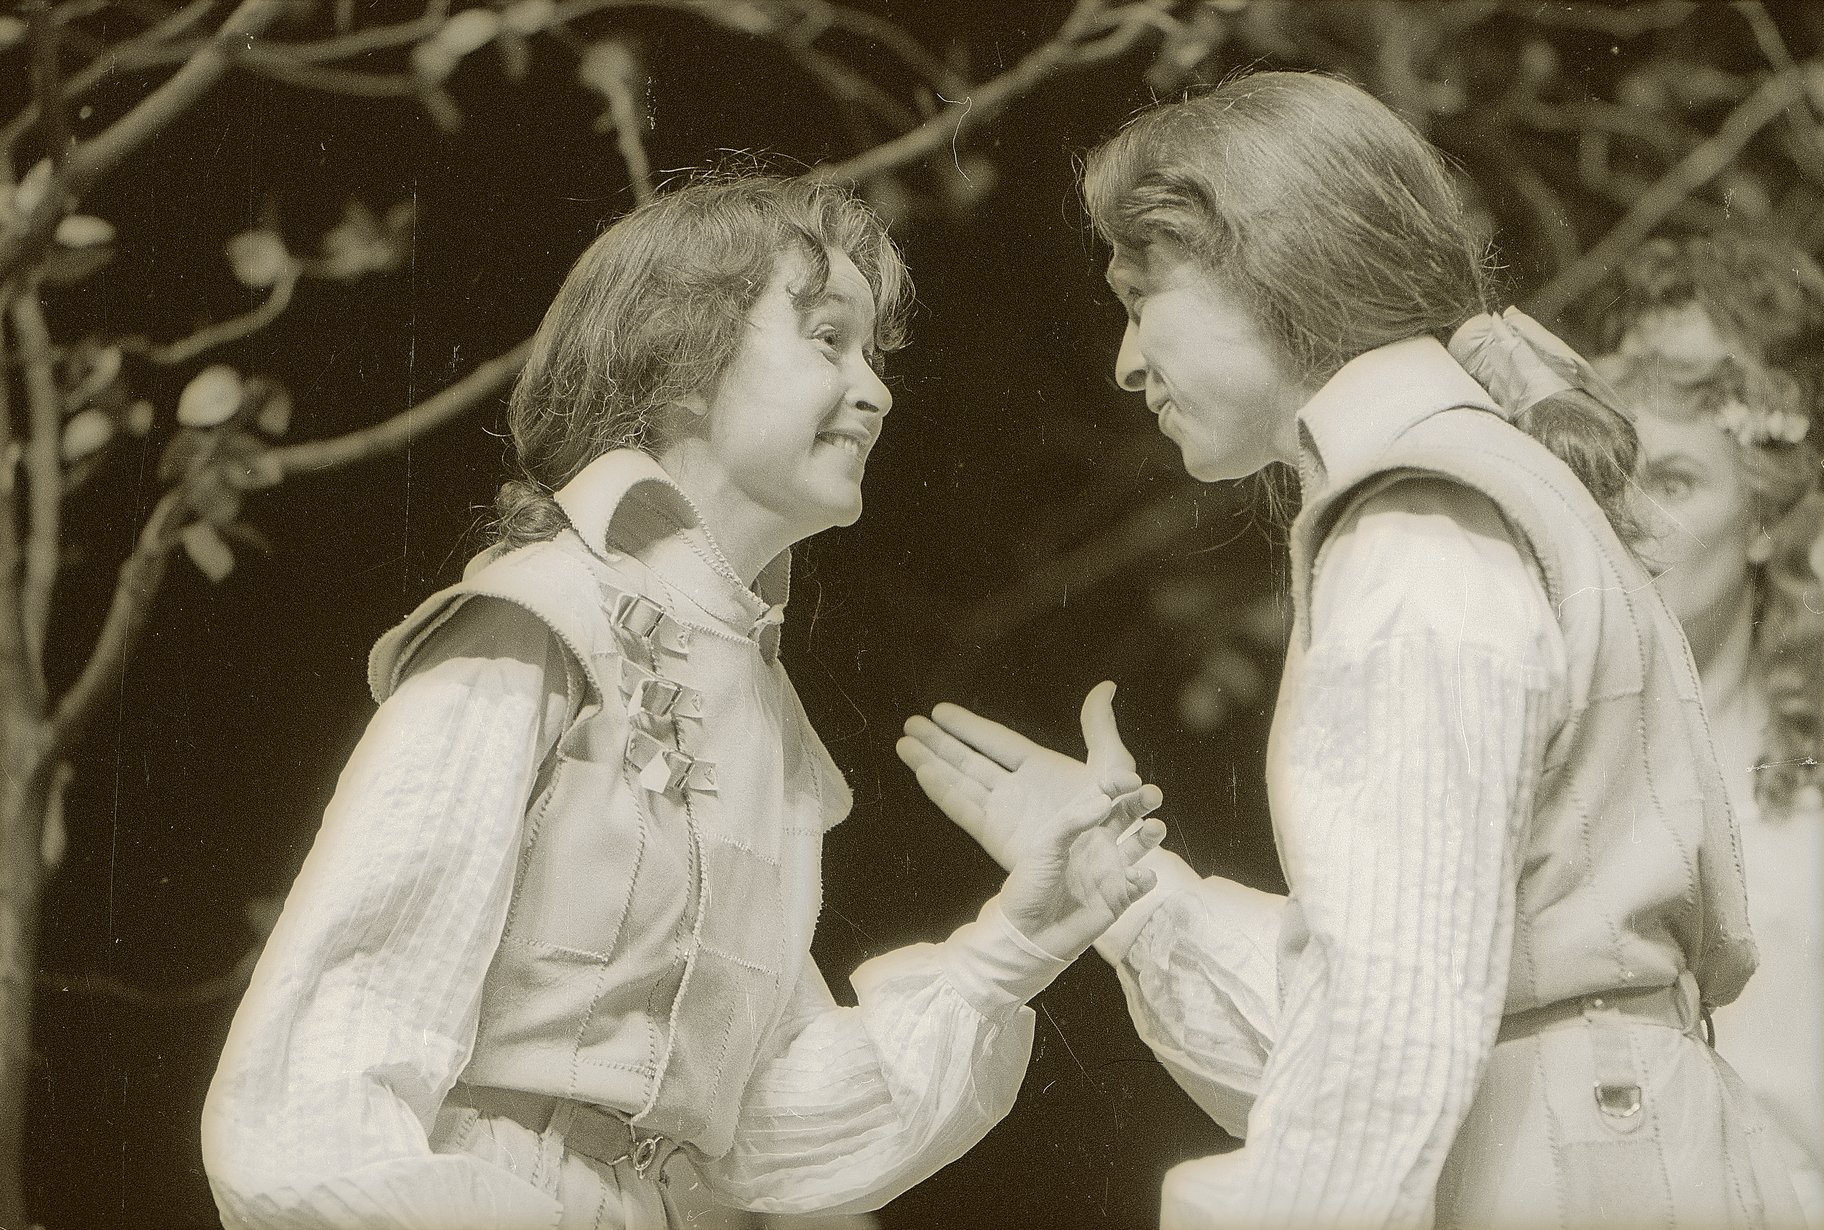 Viola and Sebastian stand face to face amazed at each other in the 1979 production of Twelfth Night.